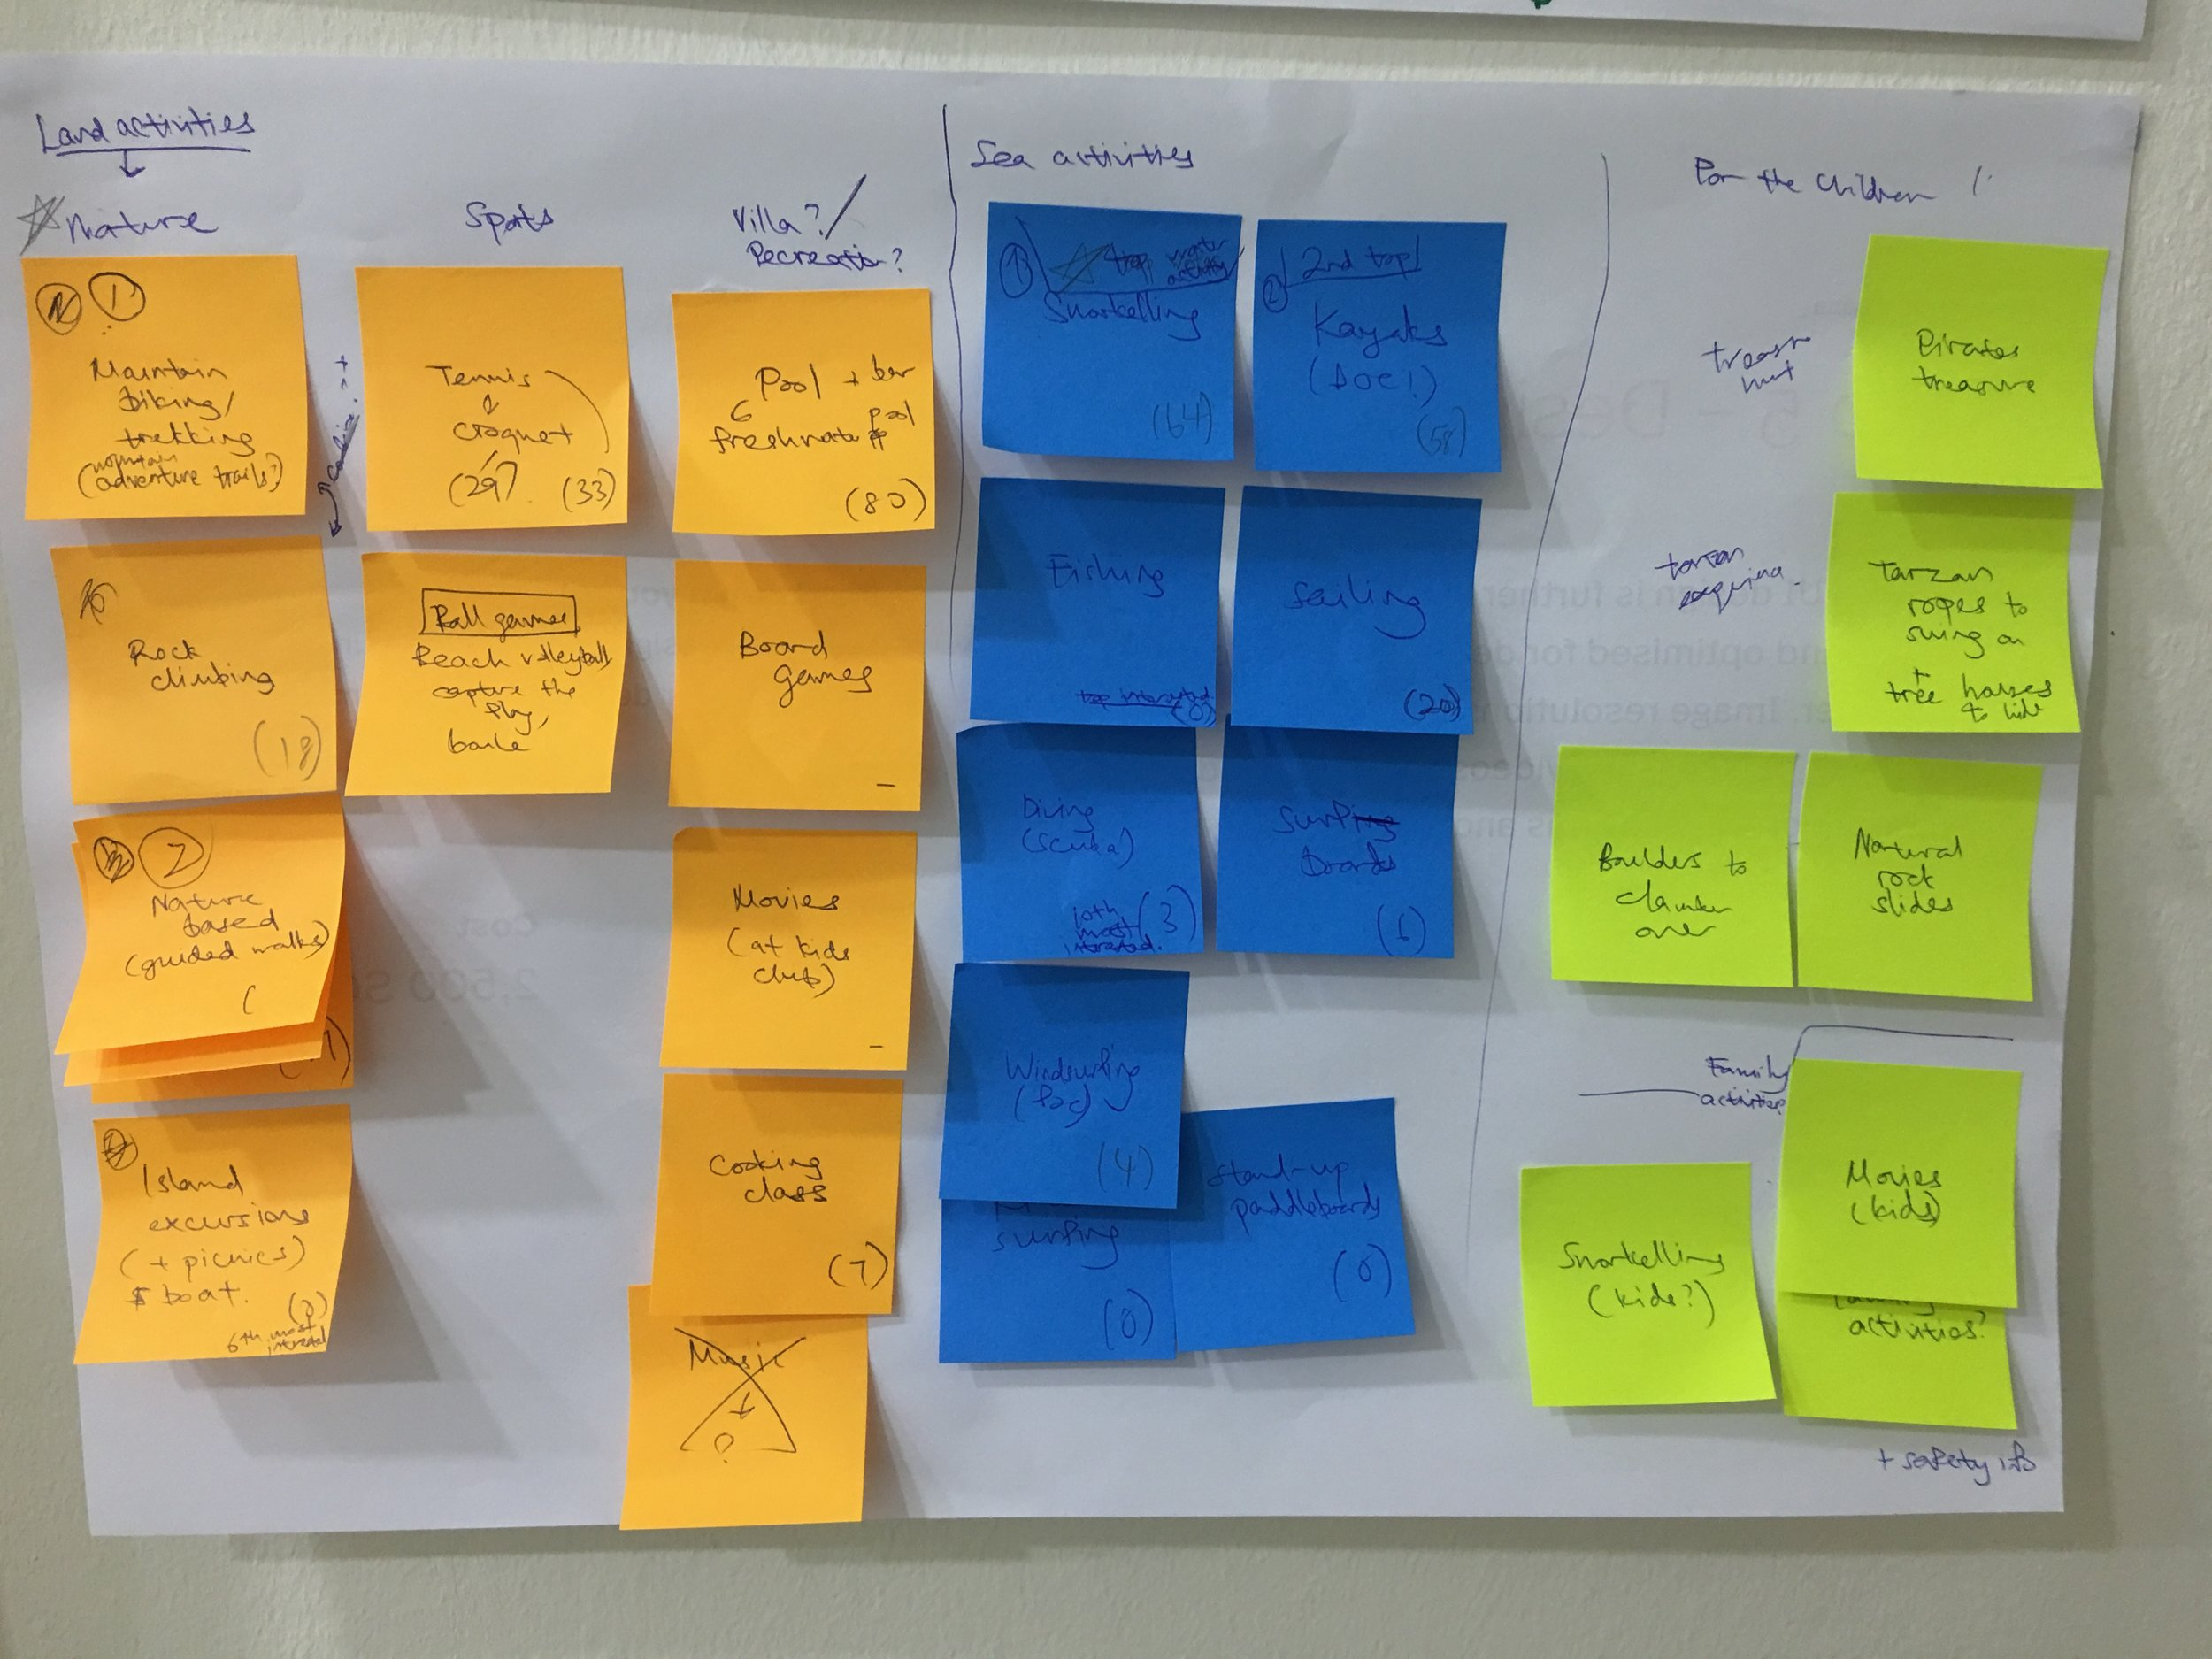 Categorising all activities offered by the island